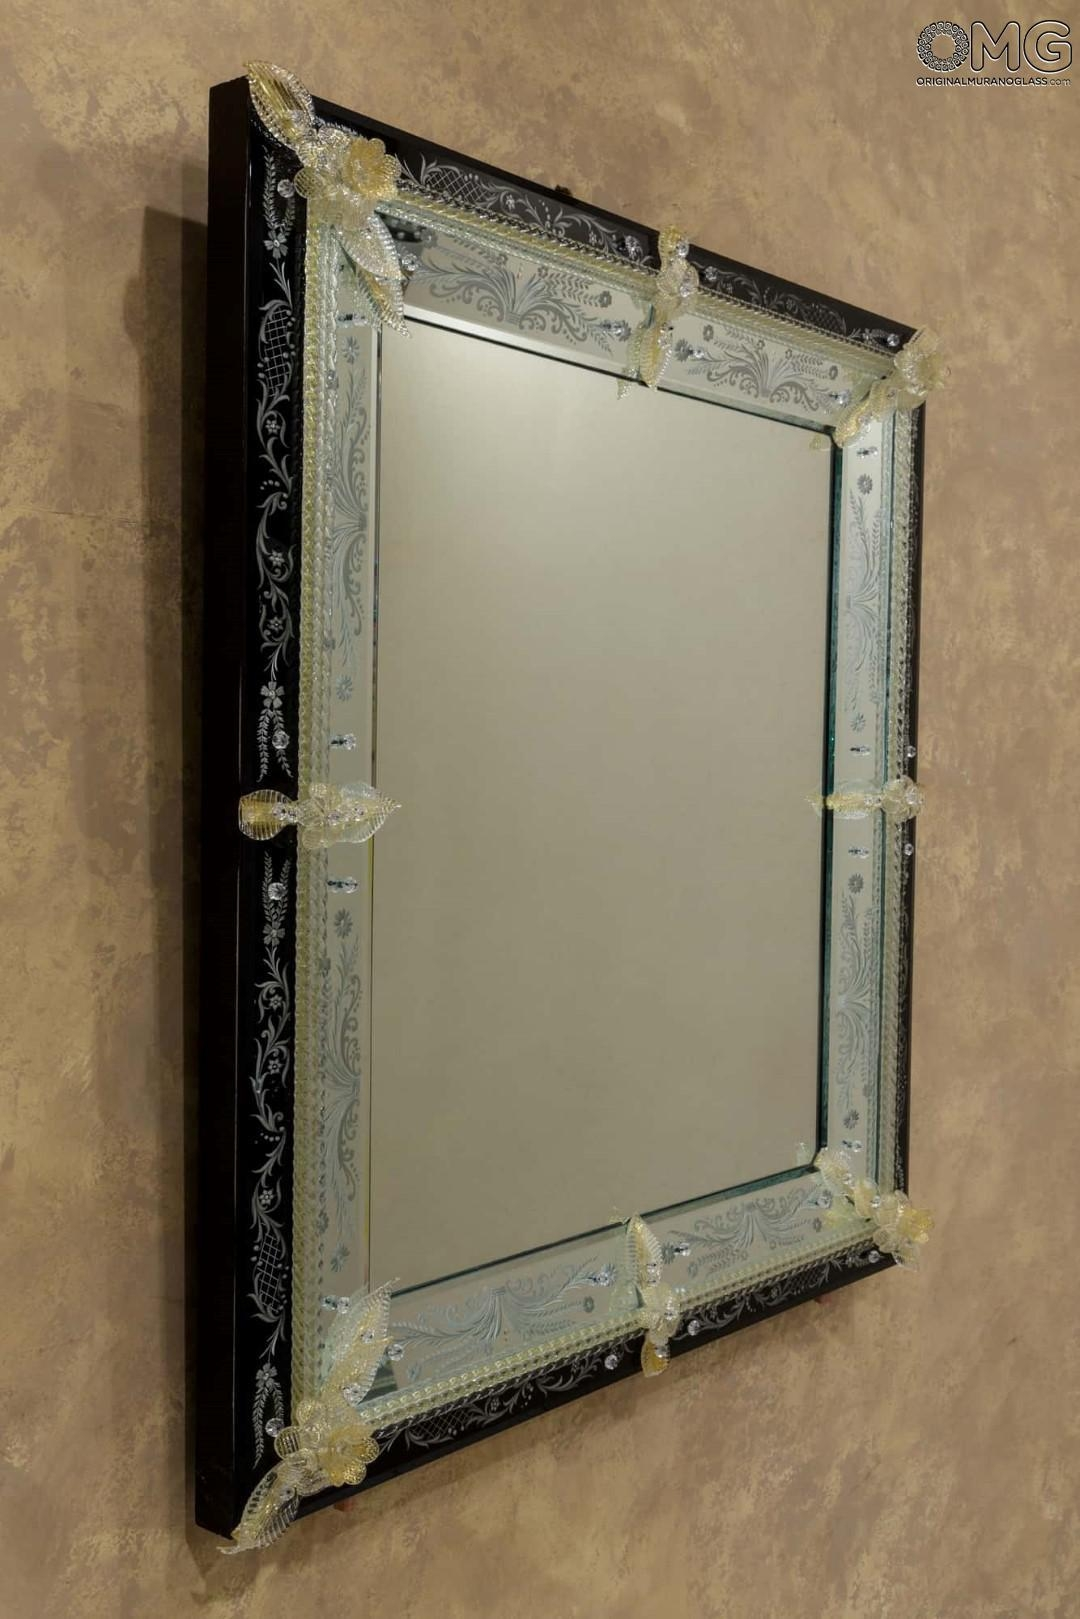 Sale, Offers And Discounts : Cesare – Venetian Mirror – Luxury Pertaining To Black Venetian Mirror (View 17 of 20)